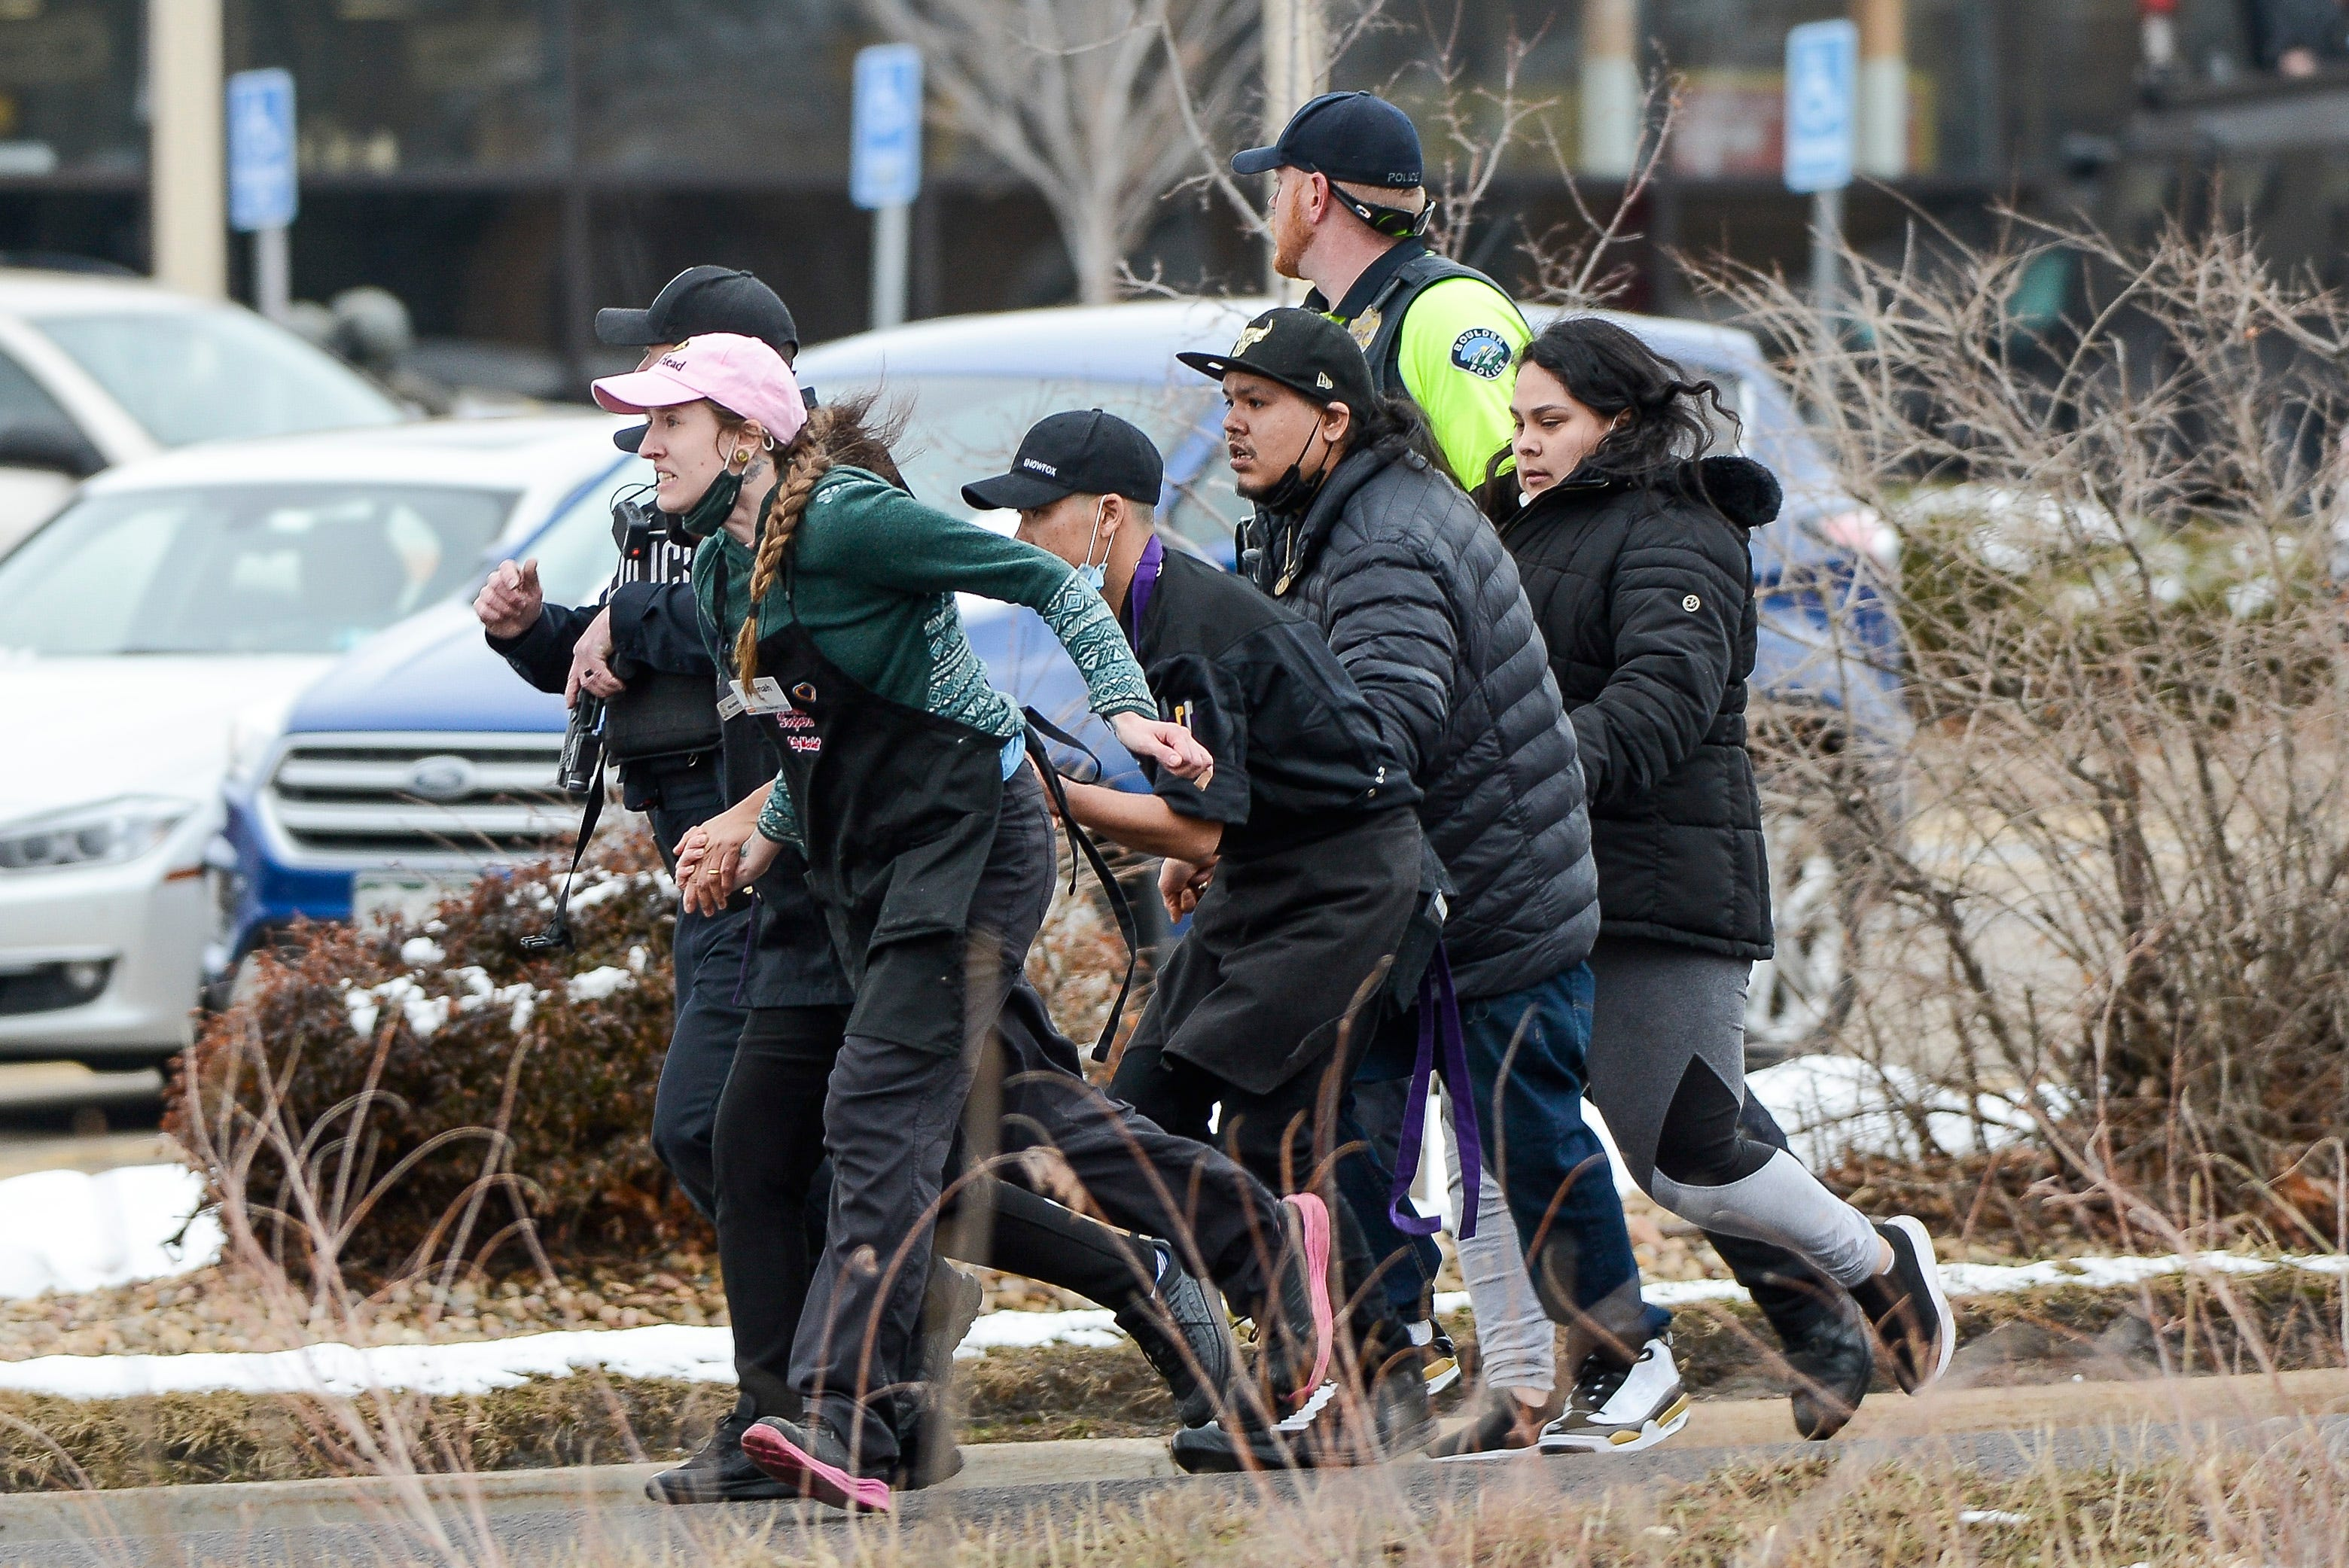 King Soopers employees are led away from an active shooter at the King Soopers grocery store in Boulder Colo. on March 22. 2021.